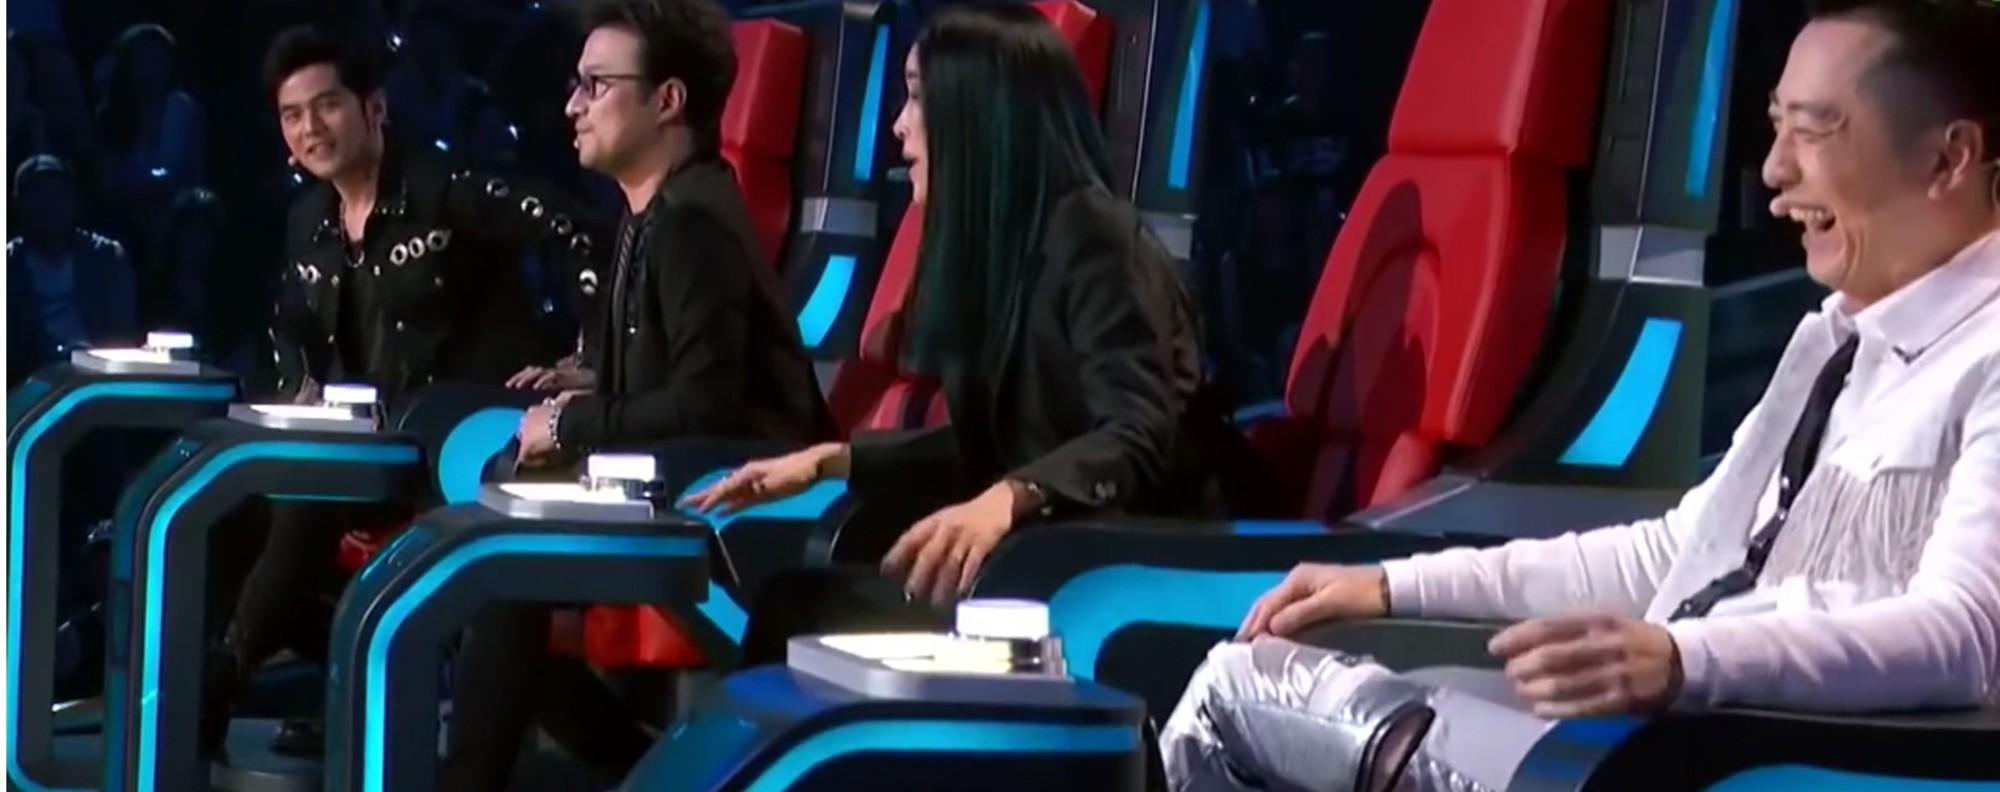 The judges on Sing! China. Photo: The Straits Times